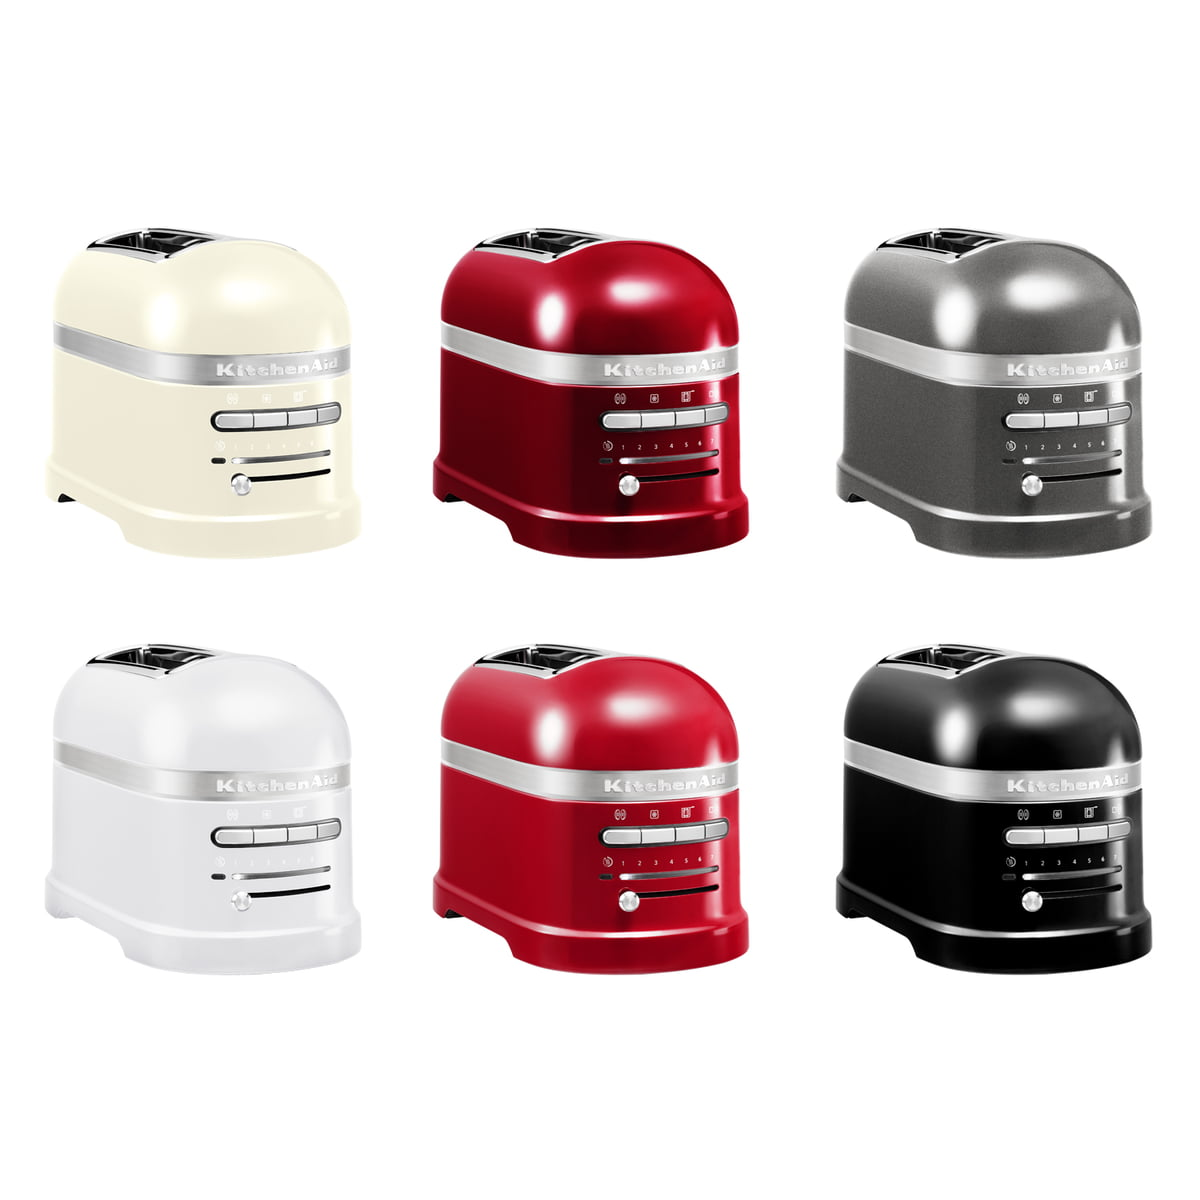 artisan toaster 5kmt2204e by kitchenaid. Black Bedroom Furniture Sets. Home Design Ideas